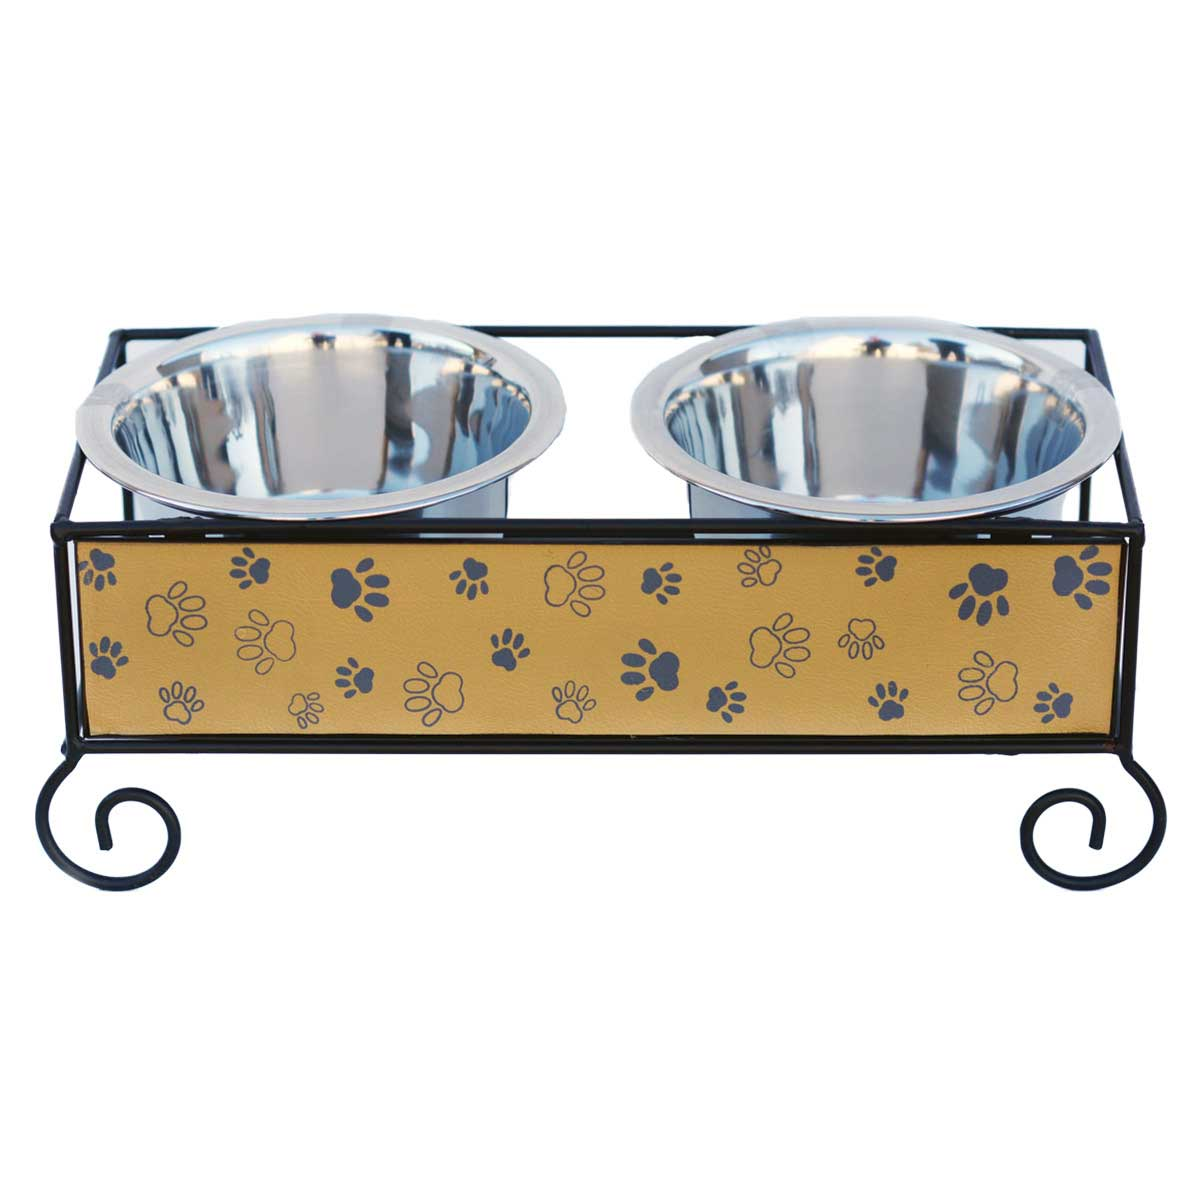 Wood And Iron Paw Design Indipets Luxe Craft Dog Diner 2 Quart